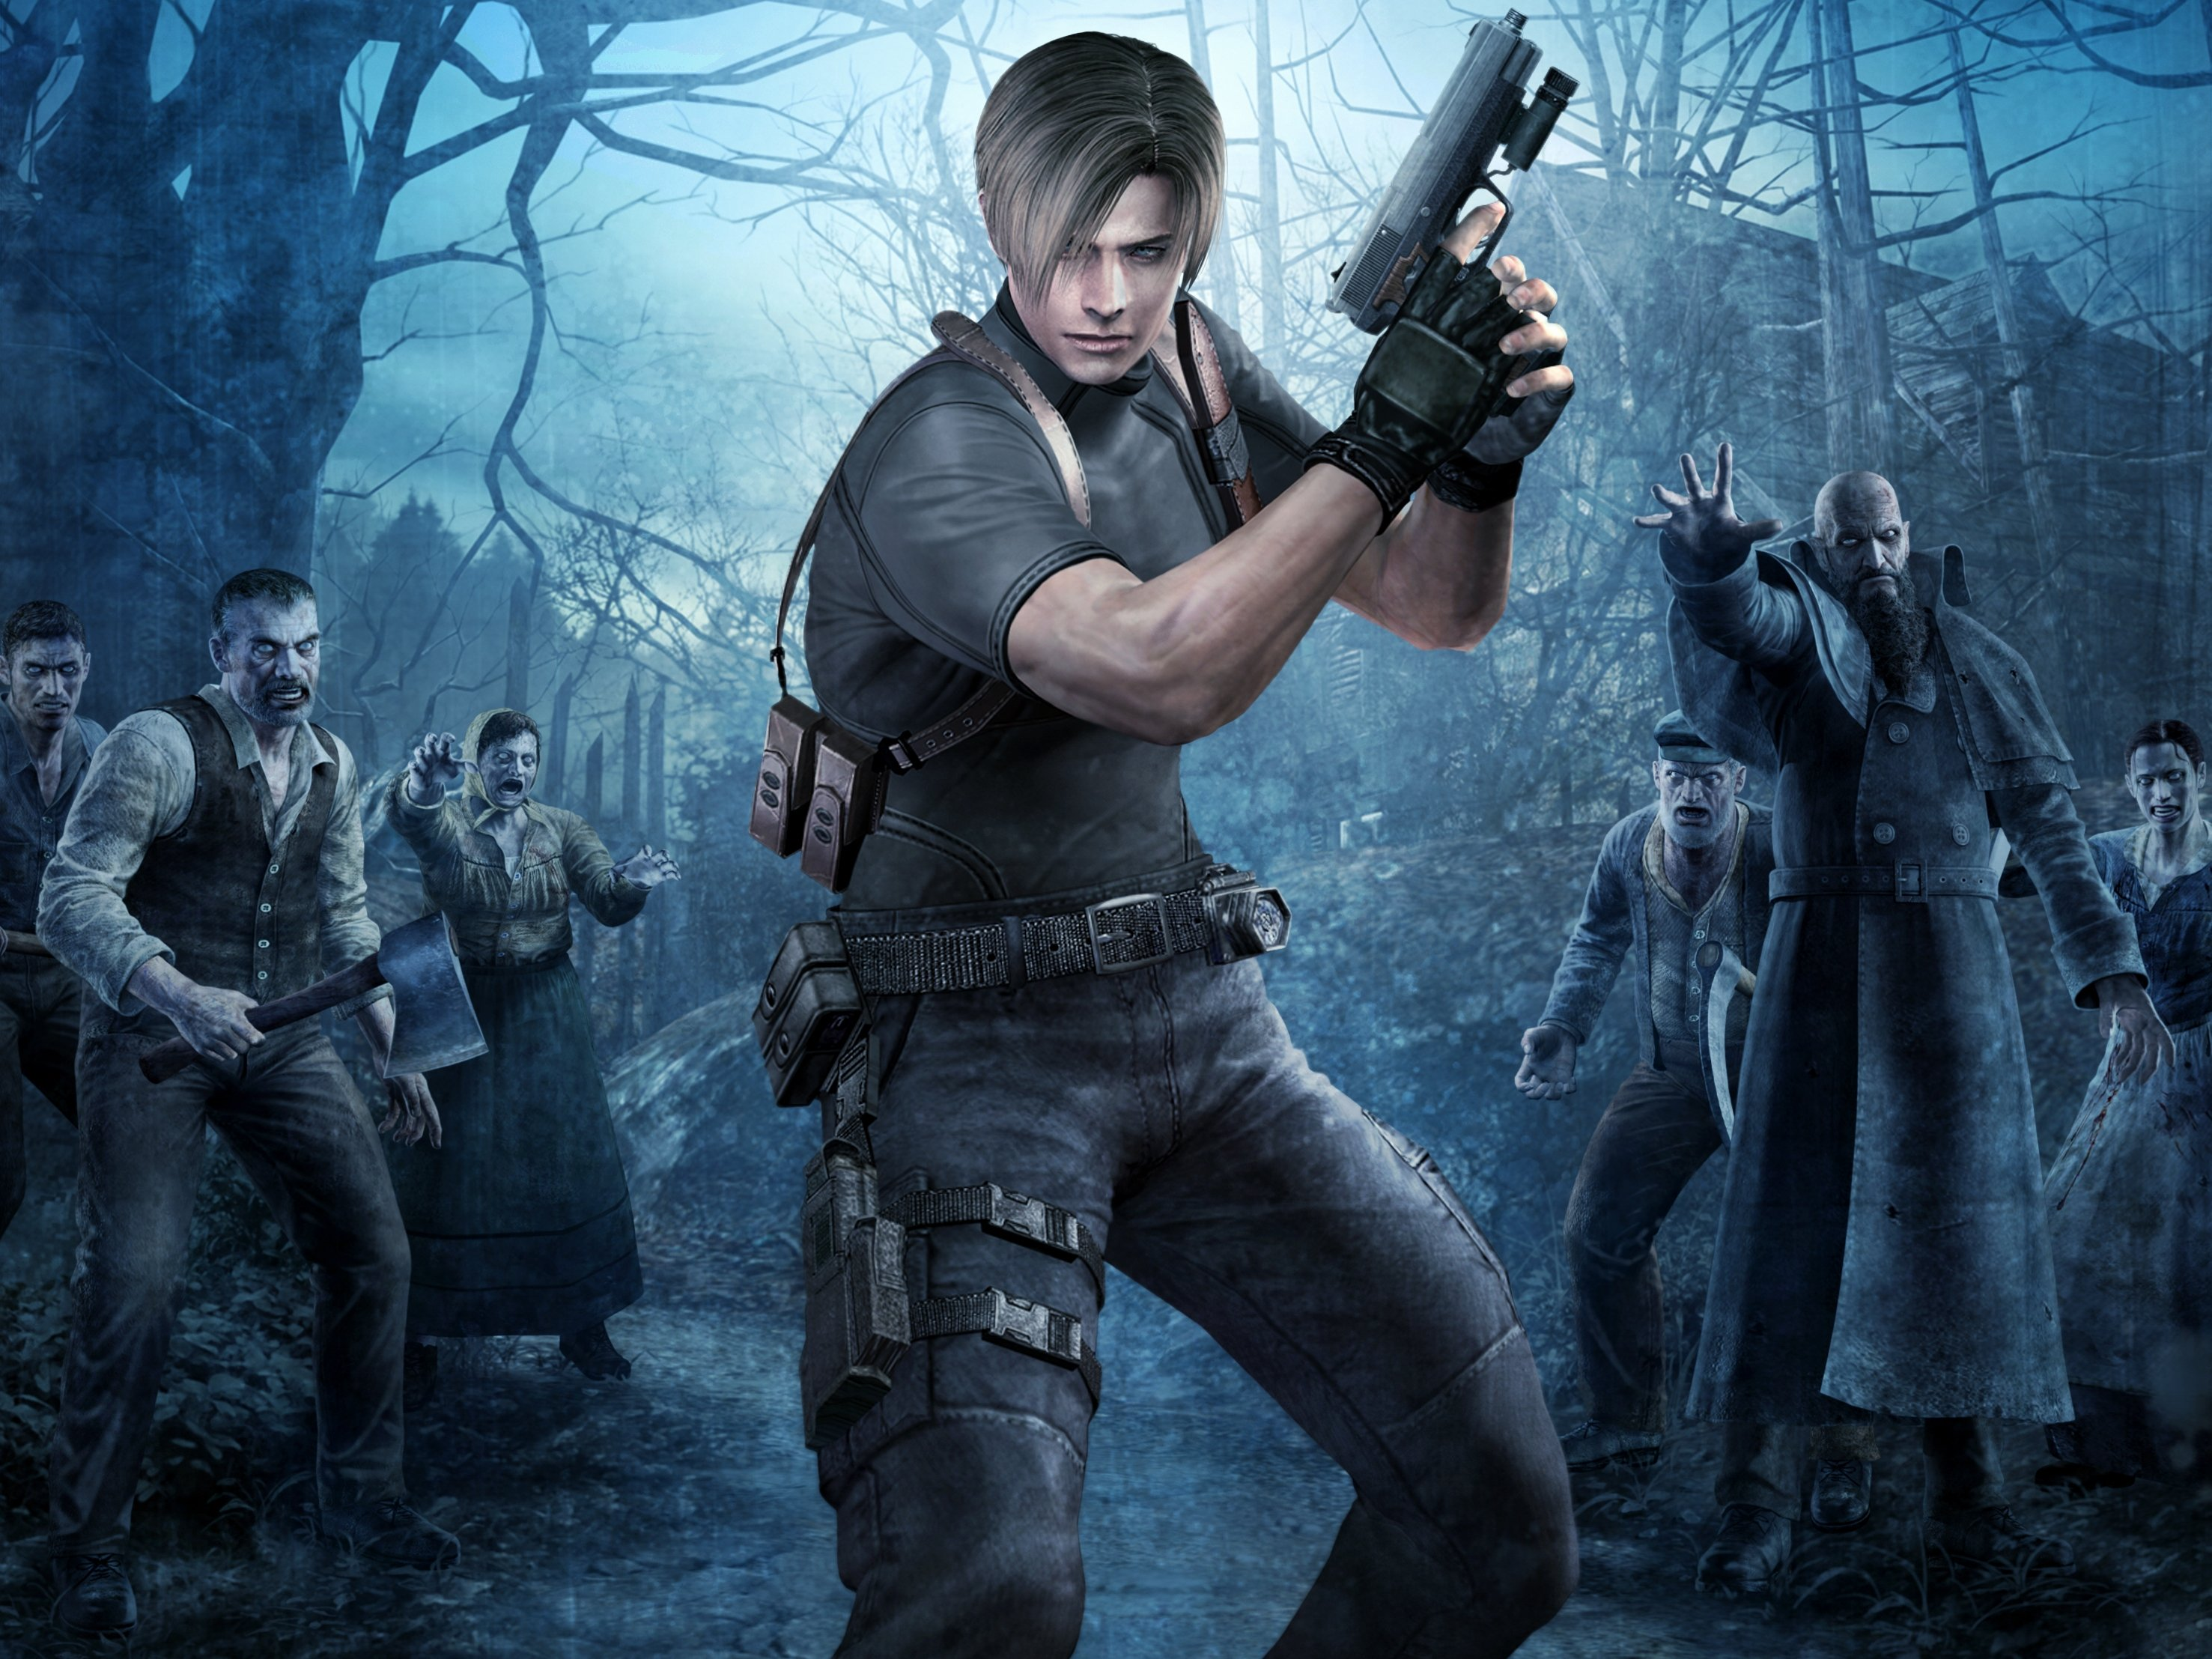 Resident Evil 4 HD Wallpapers and Background Images   stmednet 2954x2215